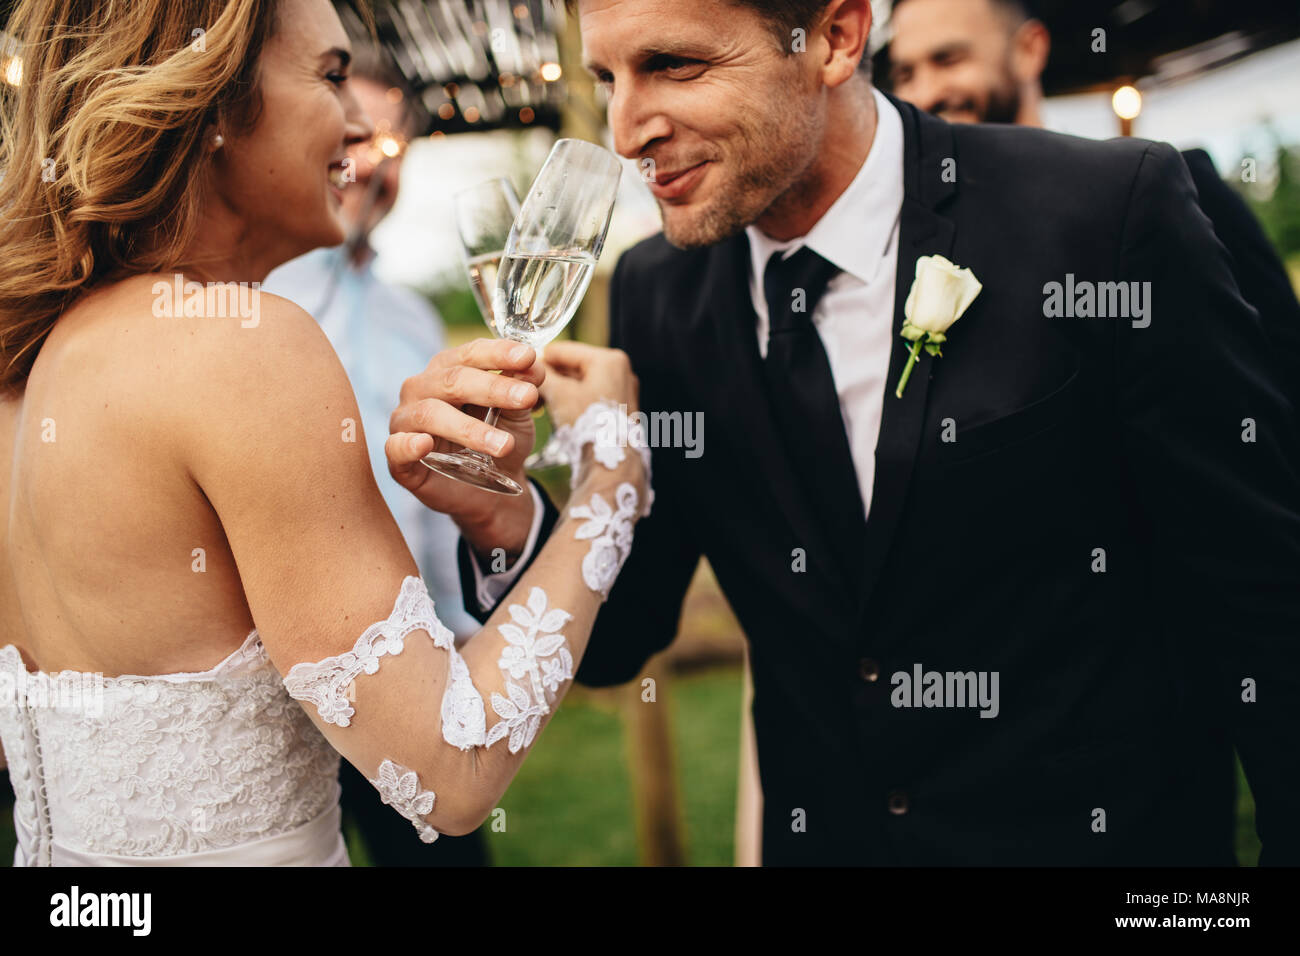 Newlyweds clinking glasses and enjoying romantic moment together at wedding reception outside. Bride and groom drinking champagne at wedding party. - Stock Image